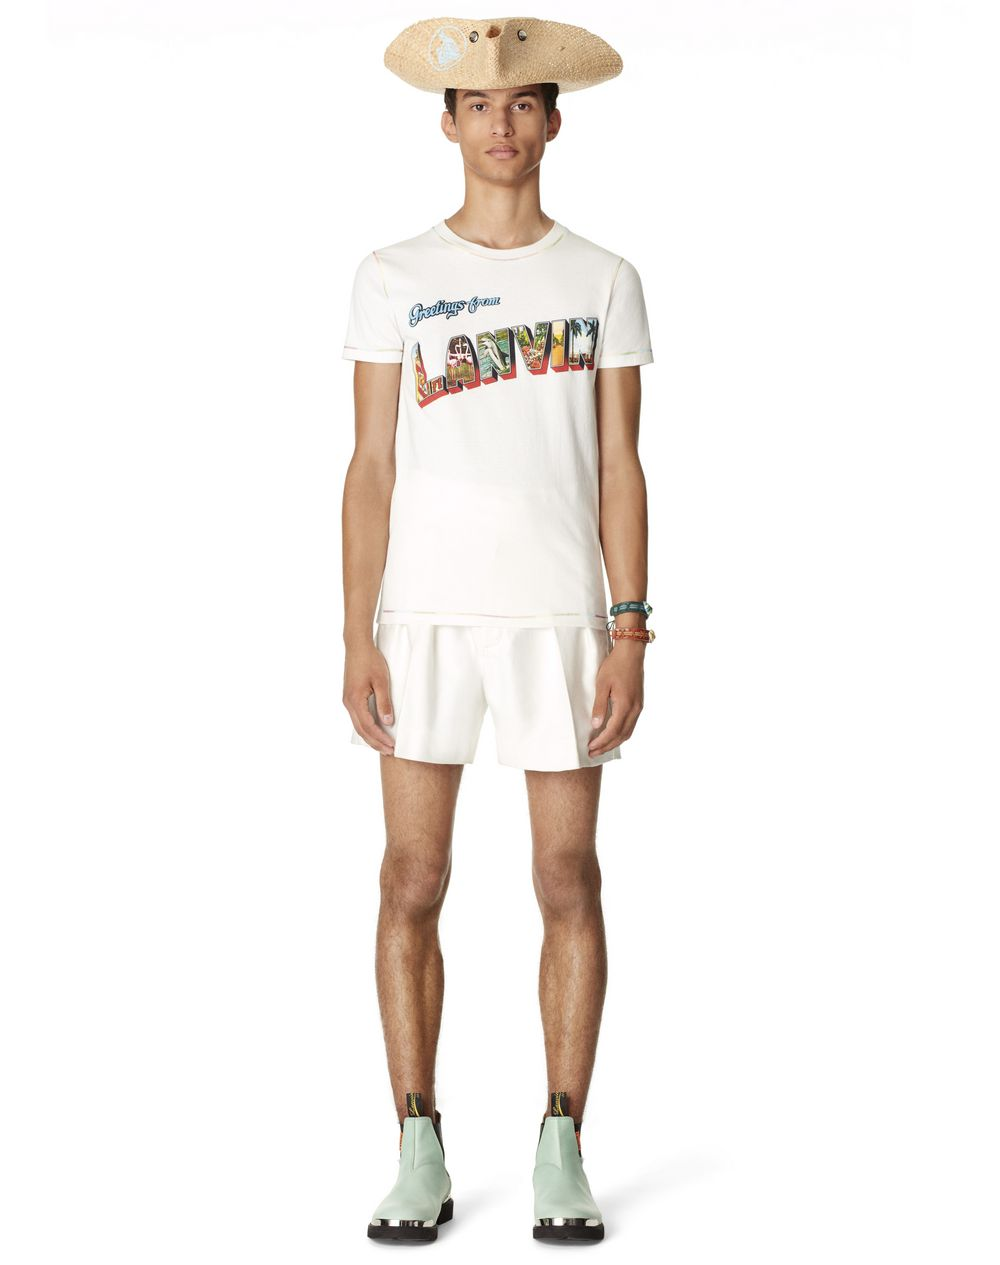 T-SHIRT IMPRIMÉ GREETINGS FROM LANVIN - Lanvin